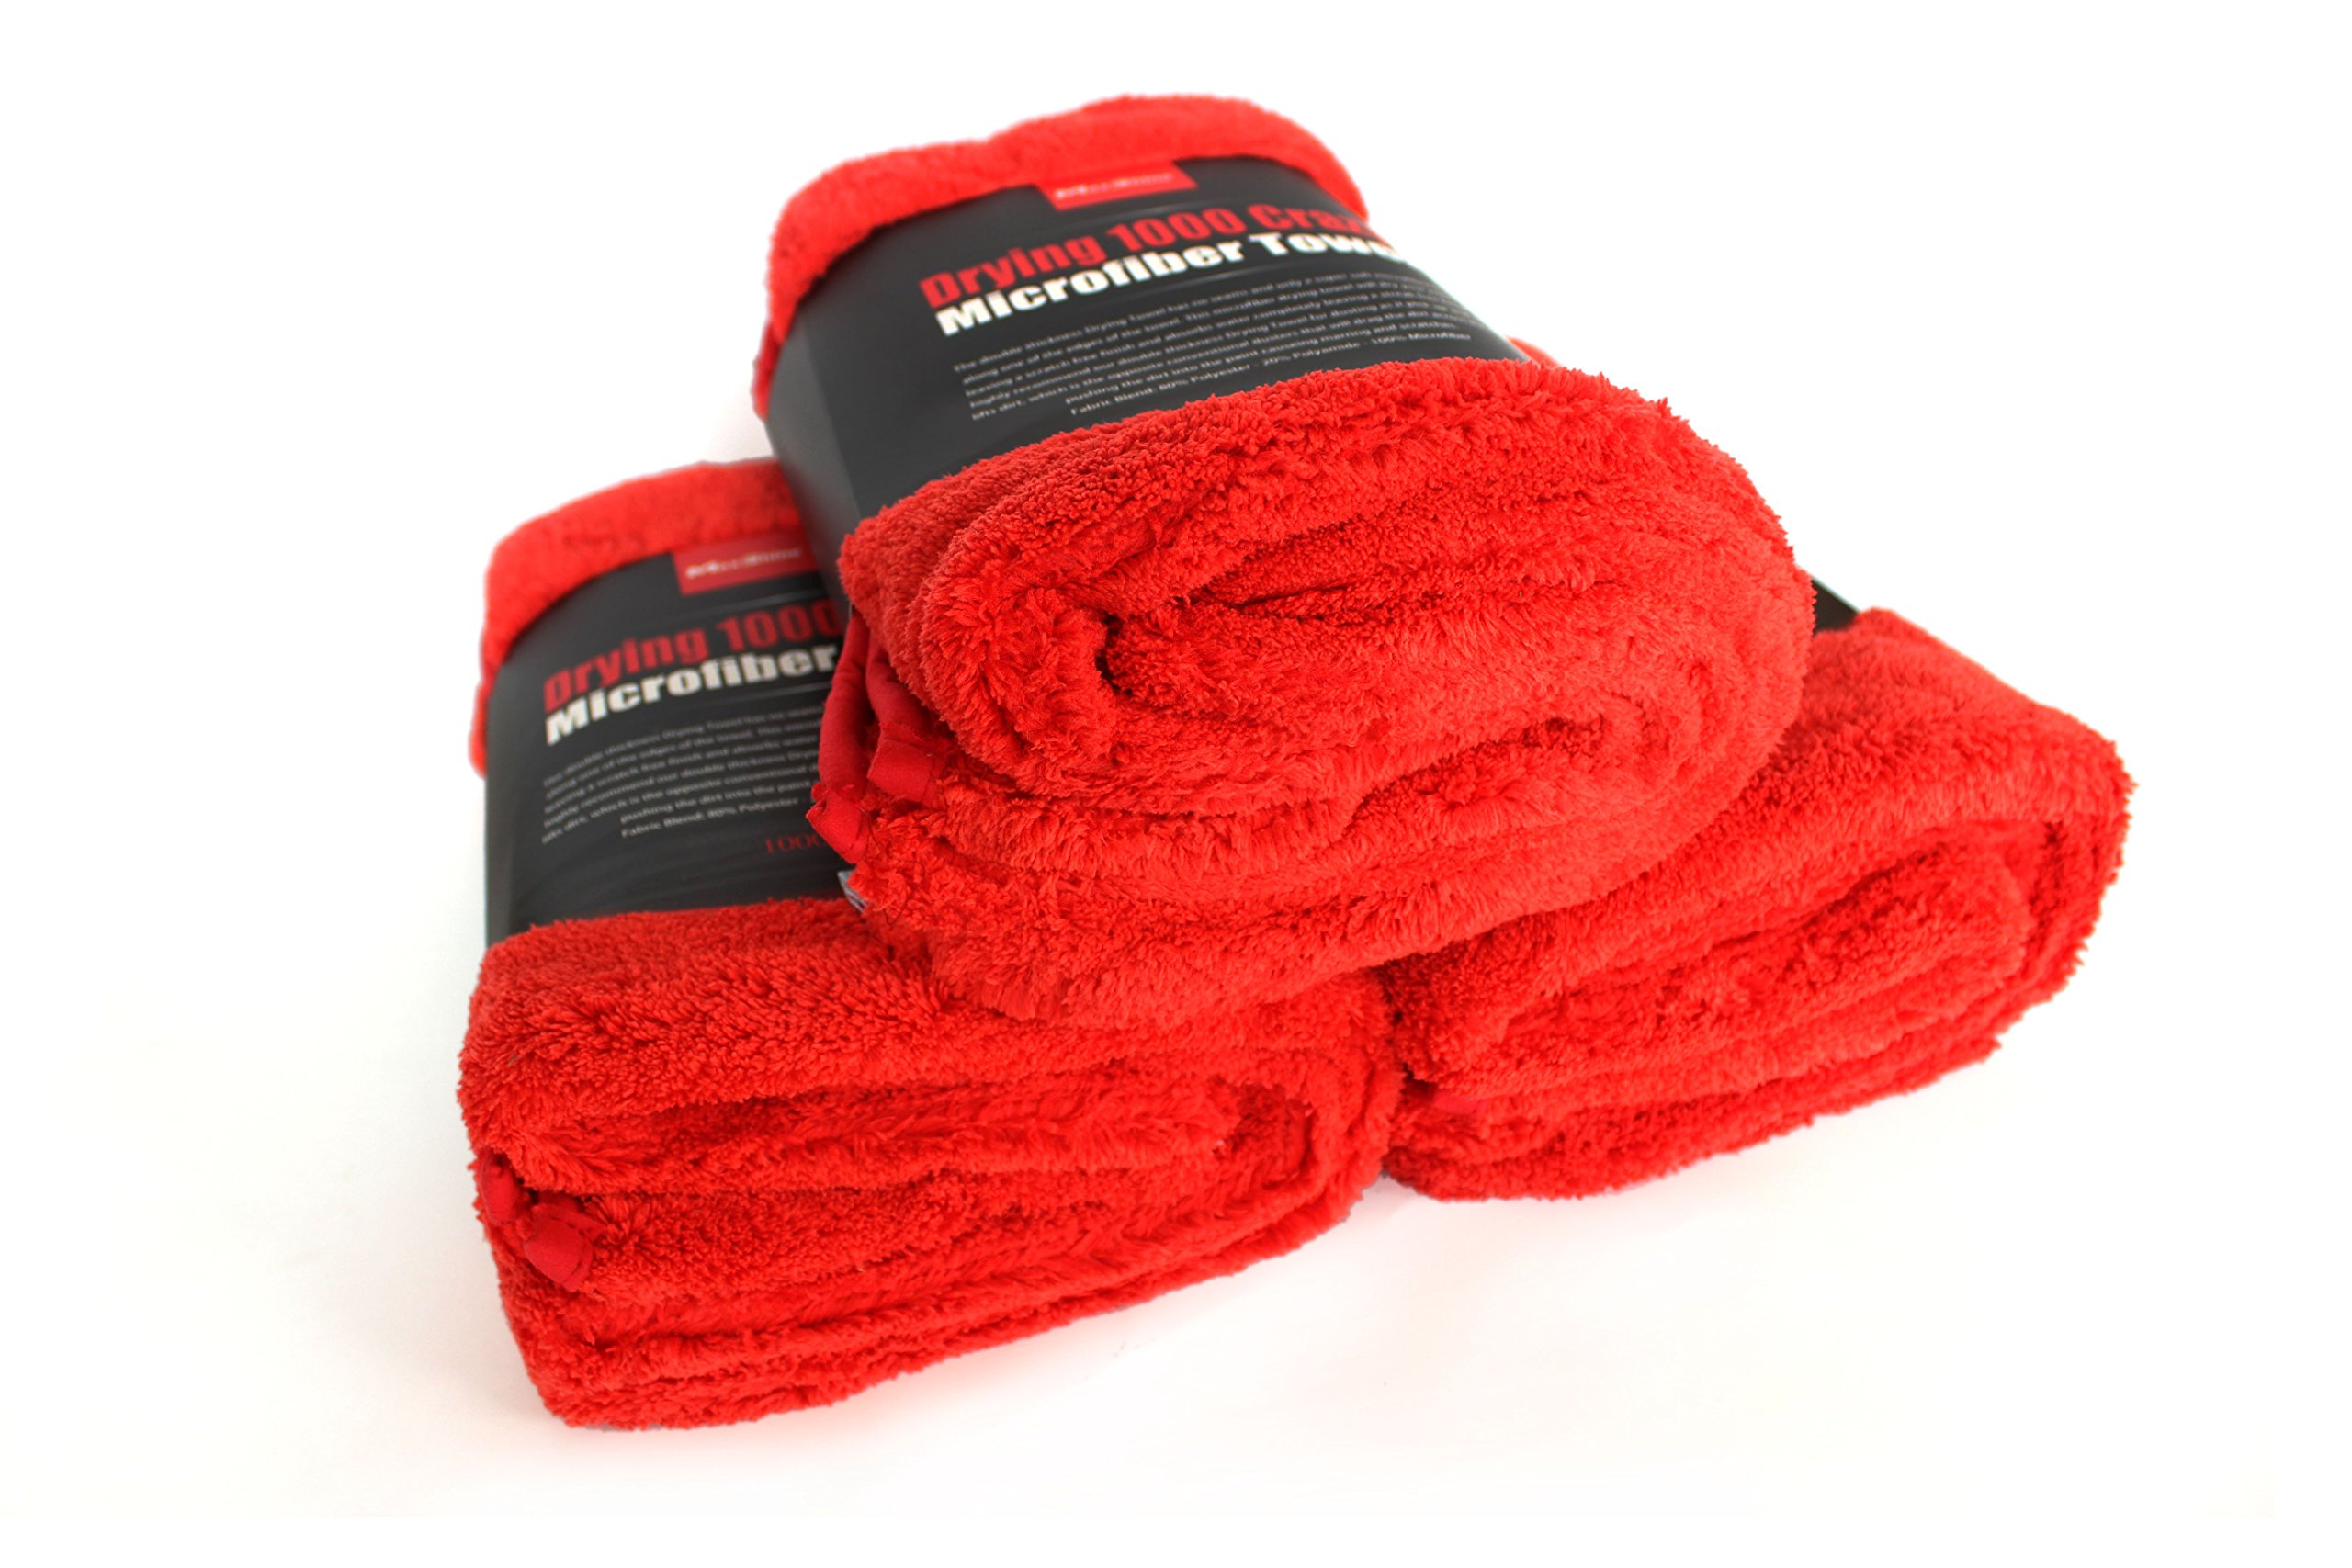 Maxshine 1000GSM Crazy Microfiber Drying Towel Series, Red, 50x70cm (Pack of 3)